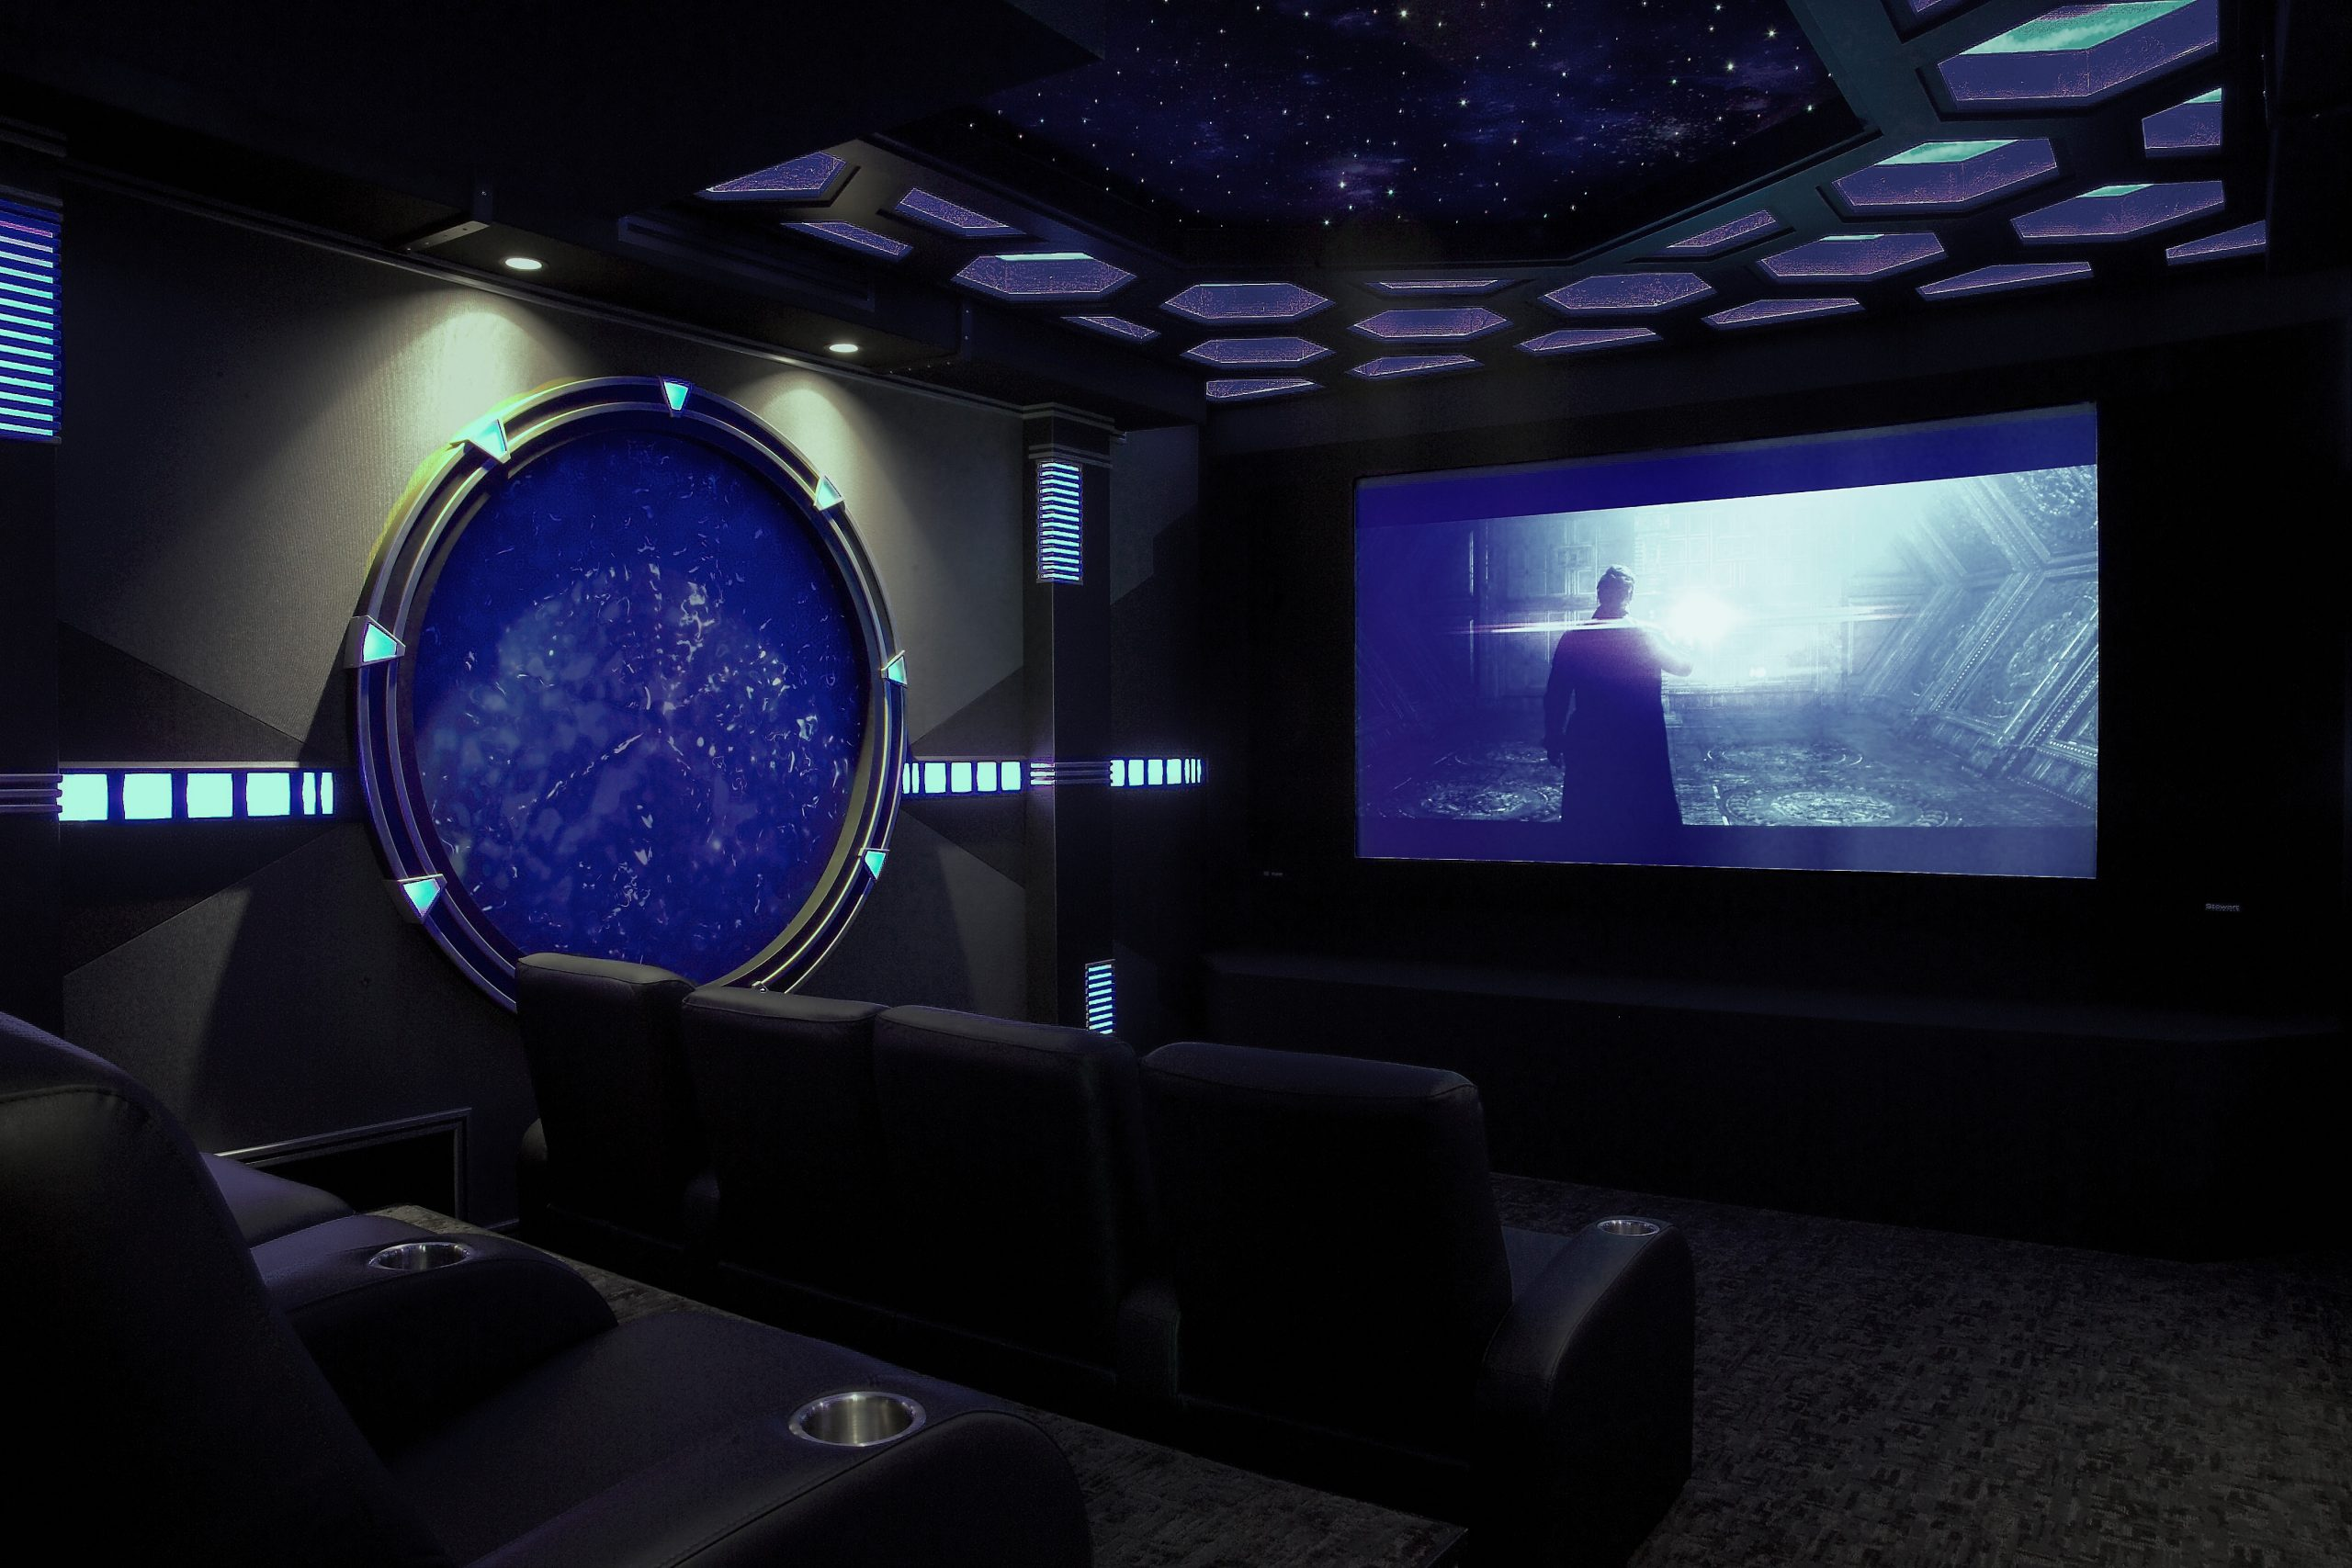 Sci-Fi Home Theater is Portal to Another World